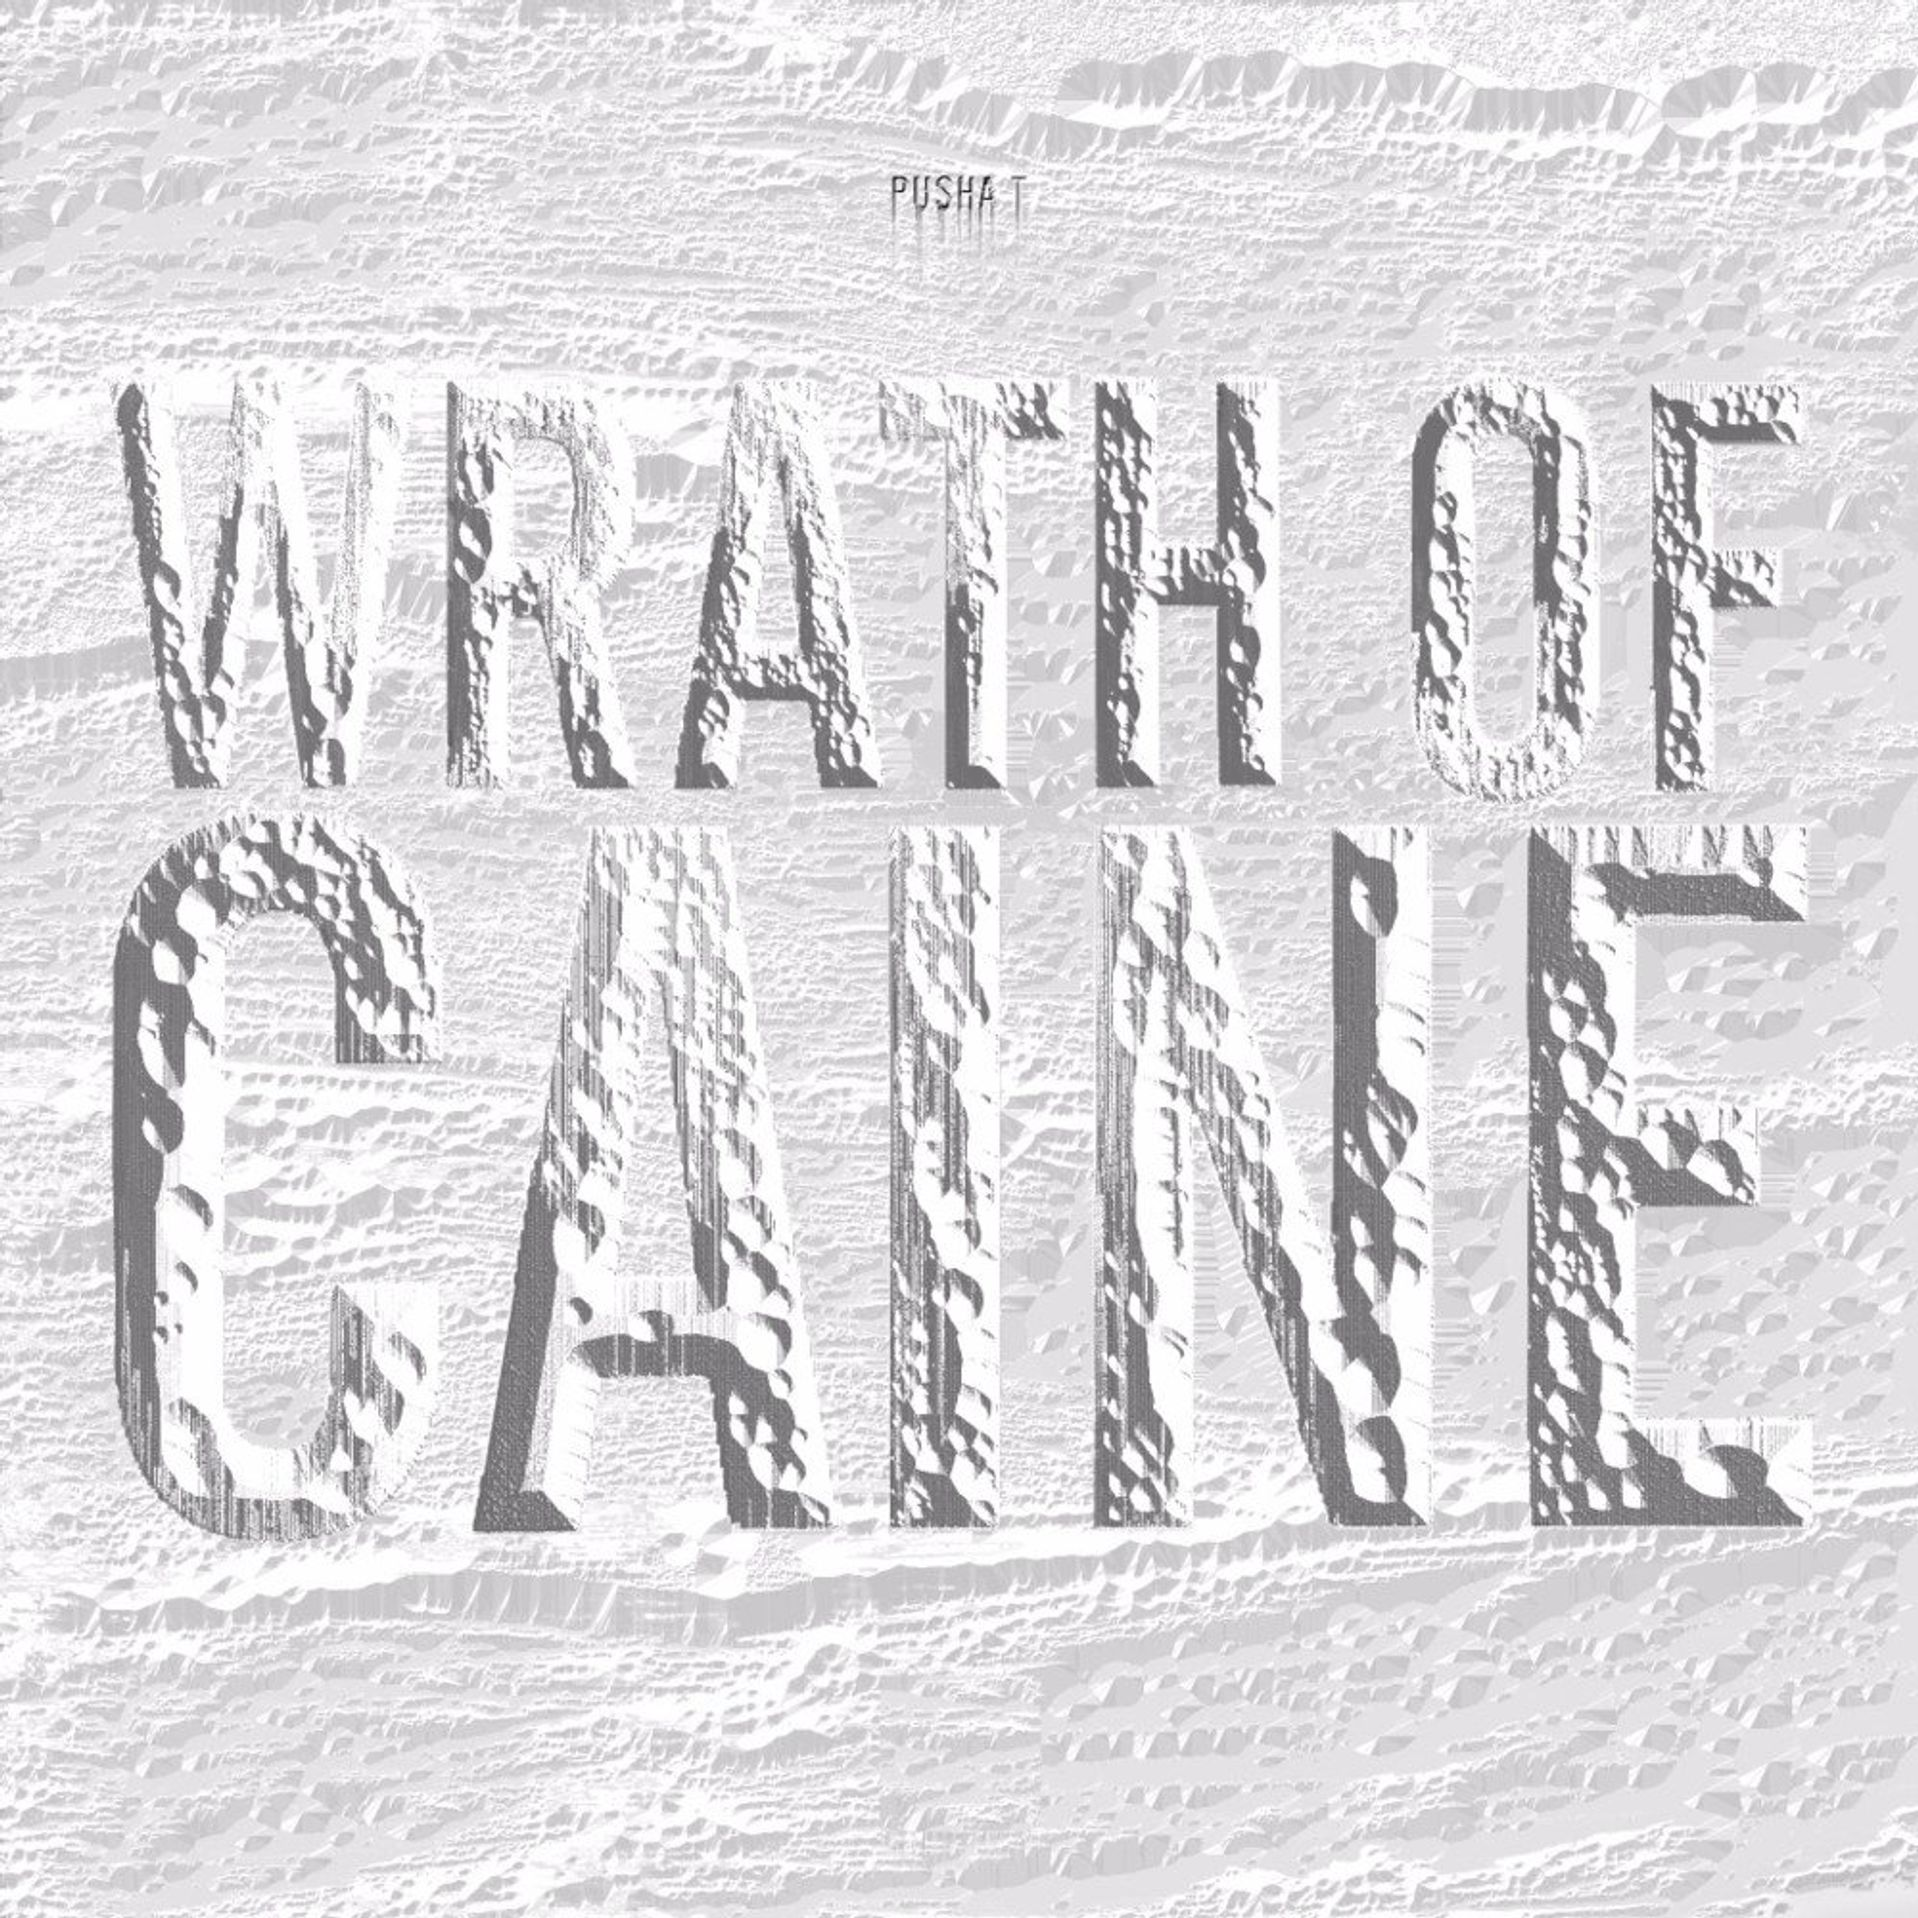 Album Title: Wrath of Caine by: Pusha T